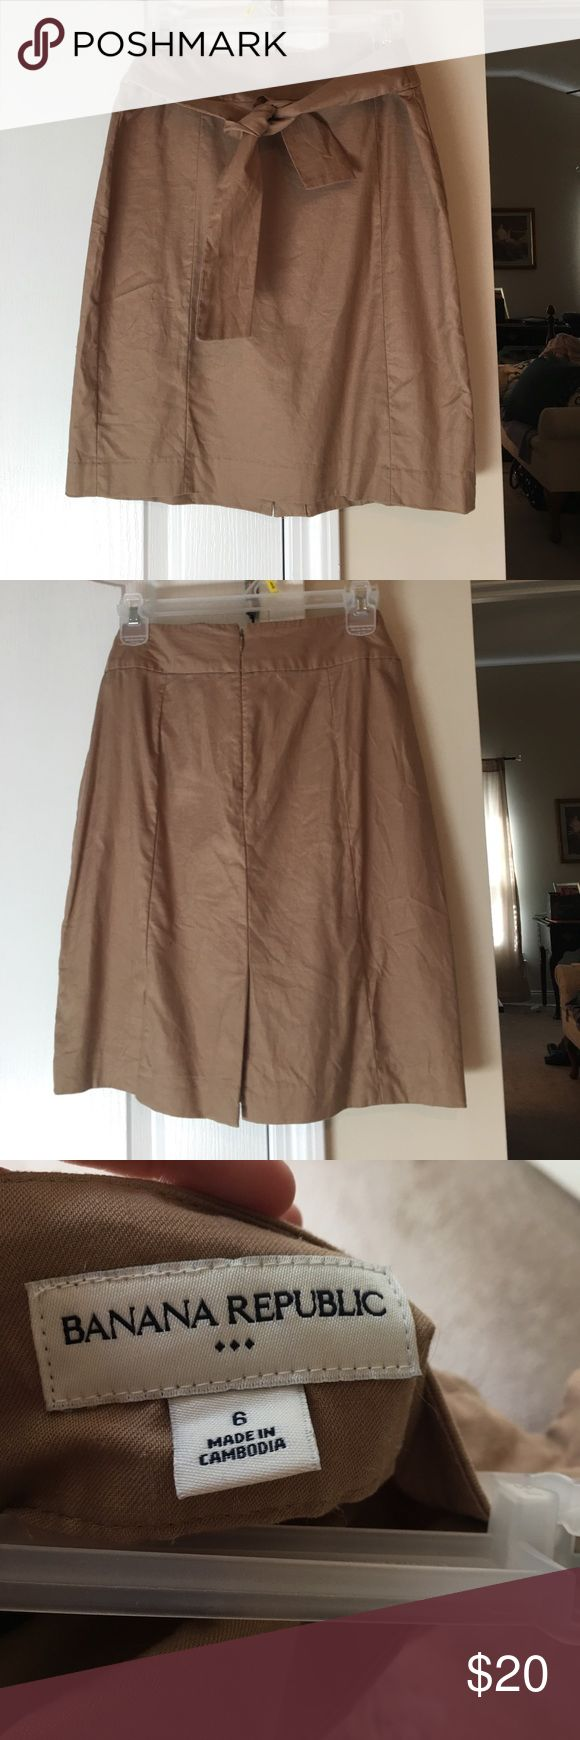 Banana Republic khaki pencil skirt with tie. Sz6. Very chic and sophisticated. Looks great on. Size 6. You can tie it multiple ways. EUC. Smoke free home. Ann Taylor Loft. Khaki. Pencil skirt. Banana Republic Skirts Pencil